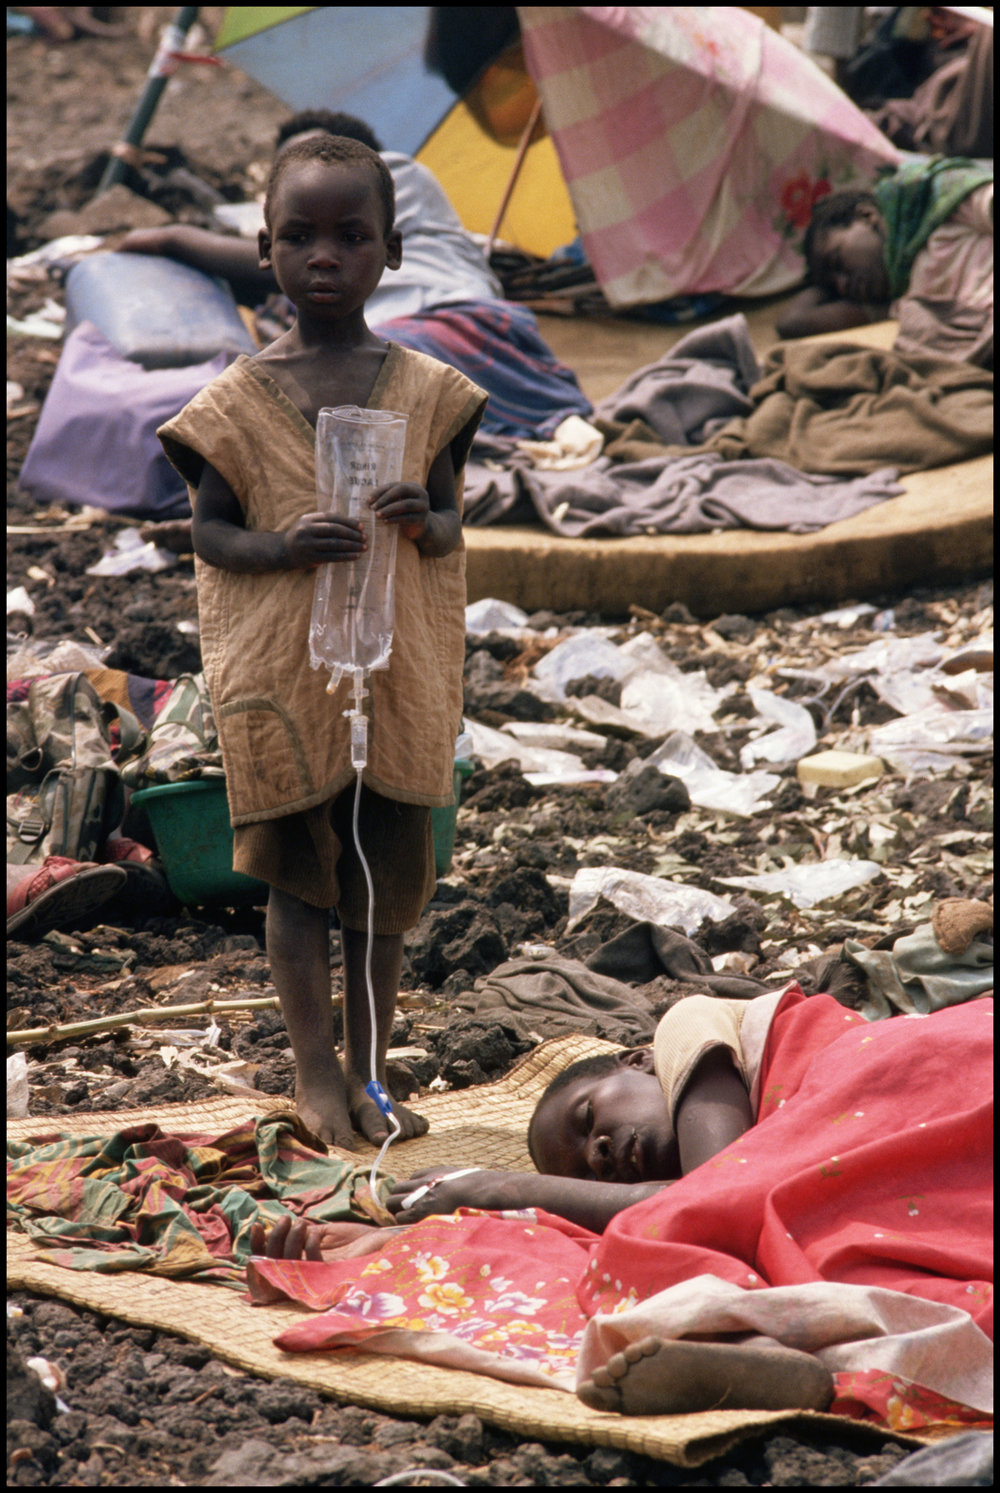 1994, Goma, Democratic Republic of the Congo --- A Hutu boy holds an IV bag for a cholera-stricken adult, possibly his parent, in a Rwandan refugee camp in Goma, Zaire